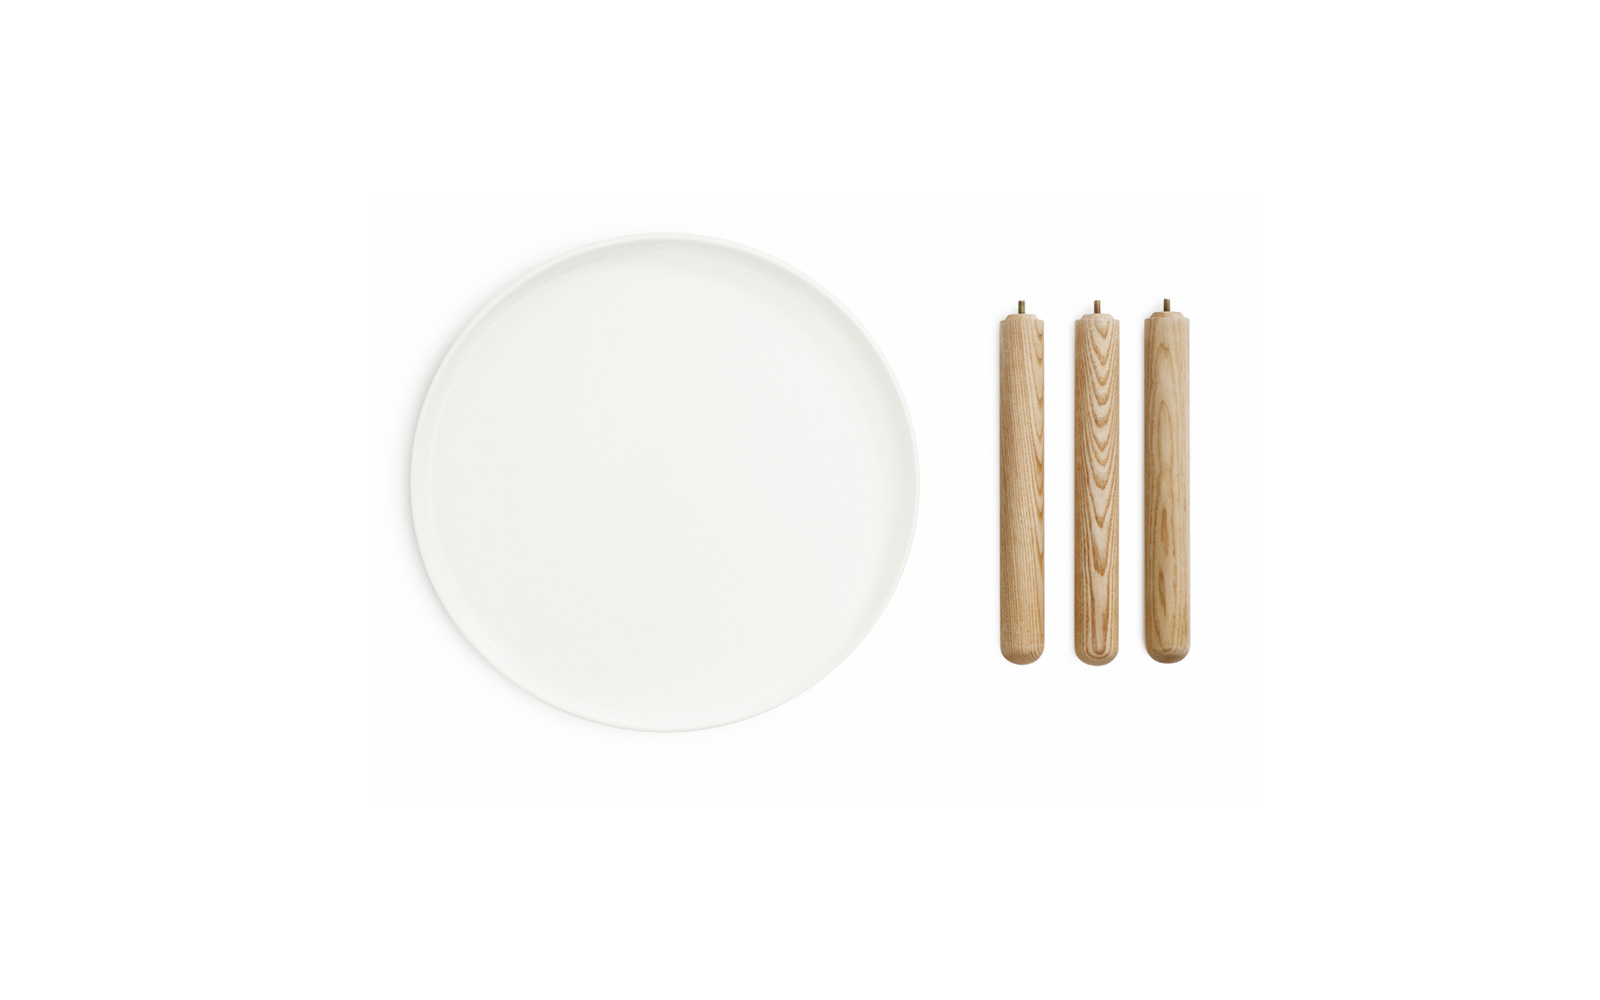 Tablo tables small white topview on a white background parts to assemble